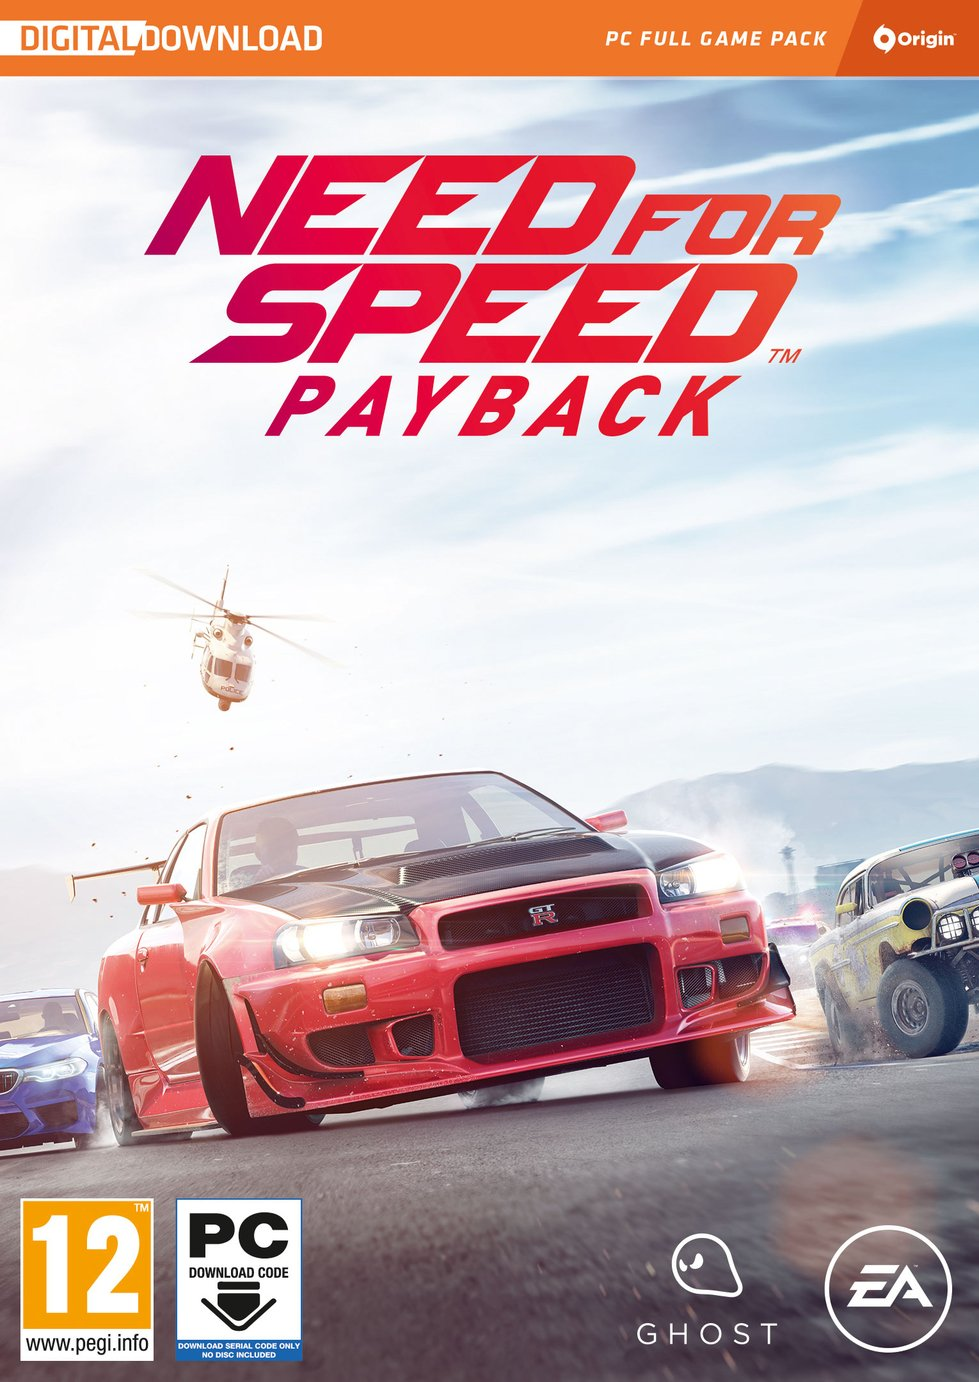 Image of Need for Speed: Payback PC Game